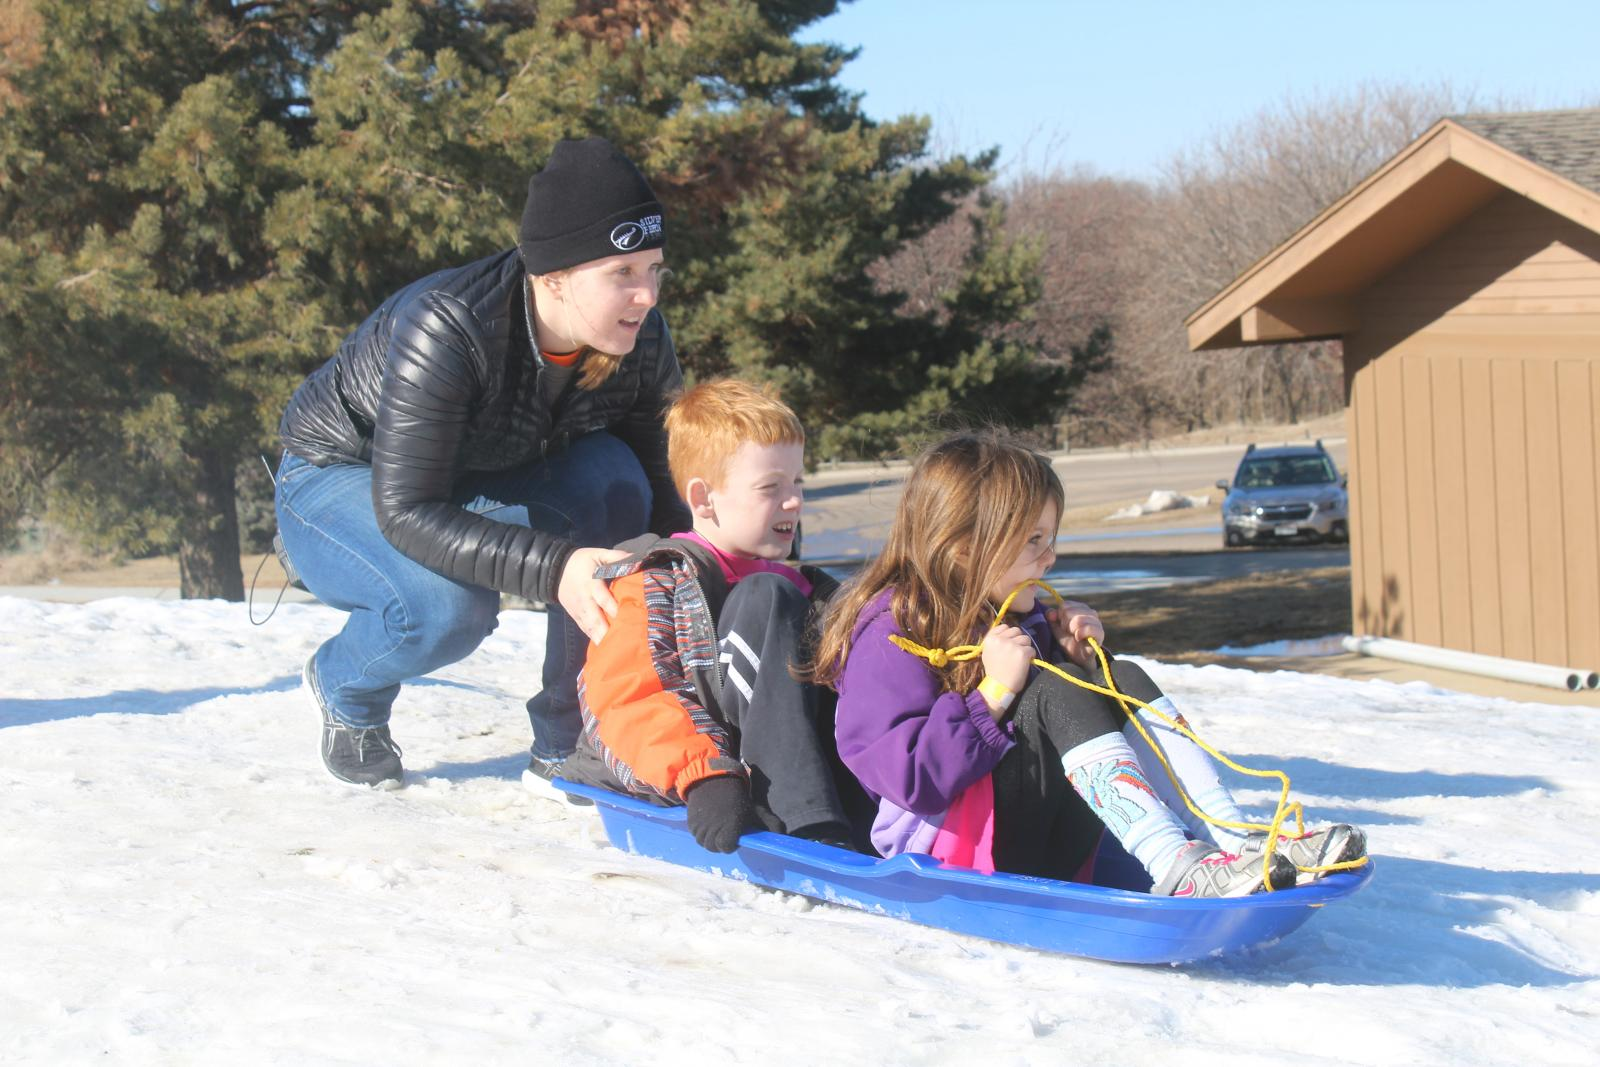 kids sledding down a snow covered hill